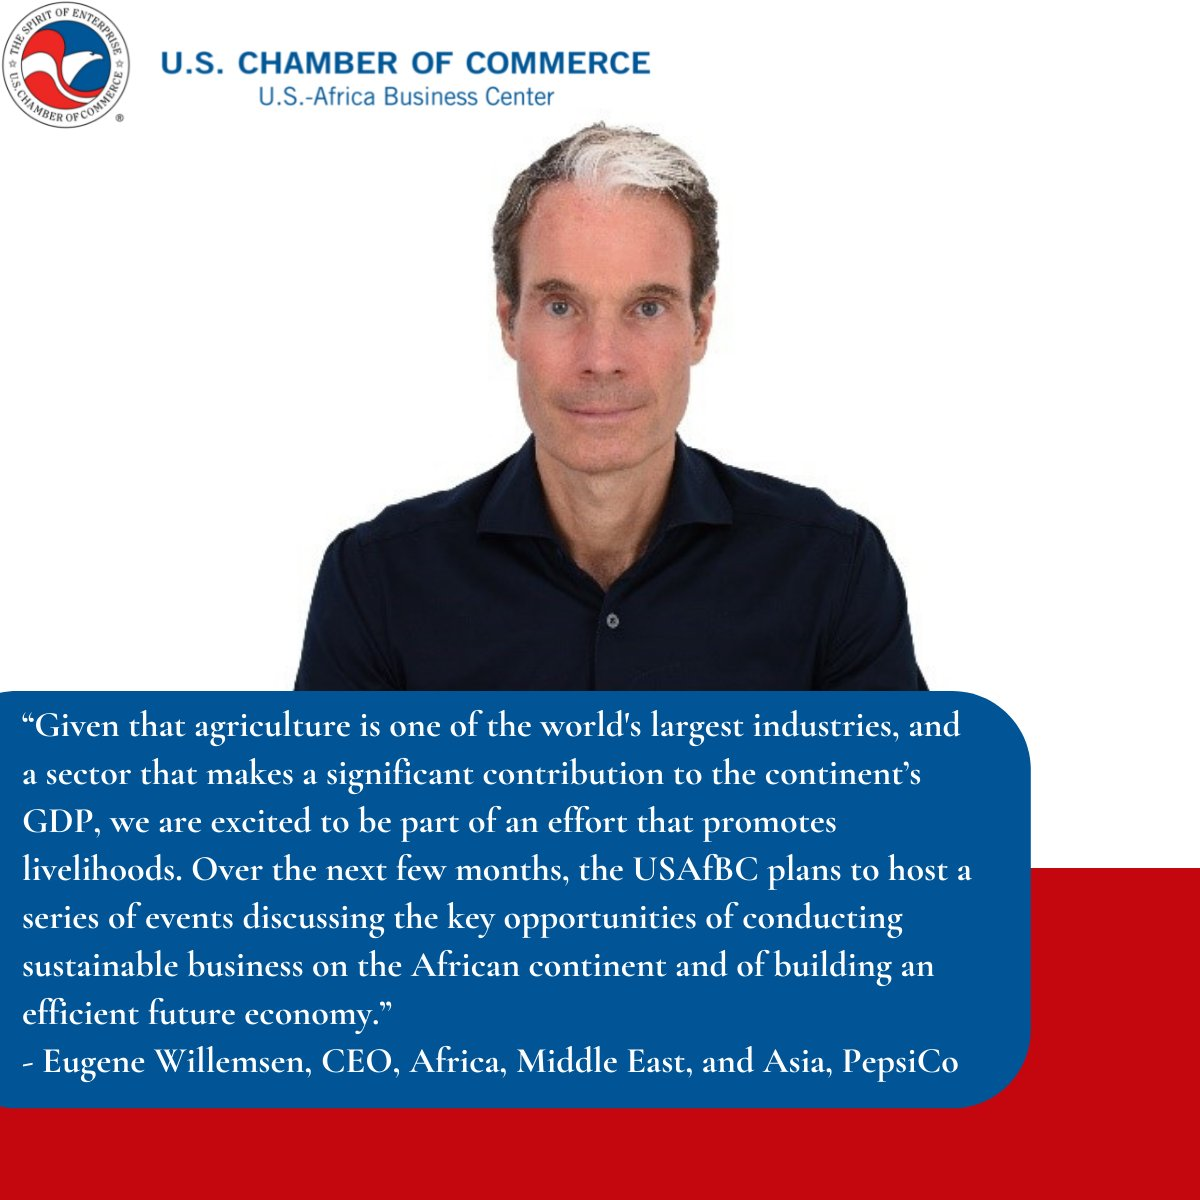 test Twitter Media - In a recent mid-year message to members, @USChamberAfrica Board Chair @EugeneWillemsen  highlighted the opportunity the private sector has to make an impact on jobs creation and growth through a focus on sustainable agriculture. https://t.co/UZFGTHH7hD